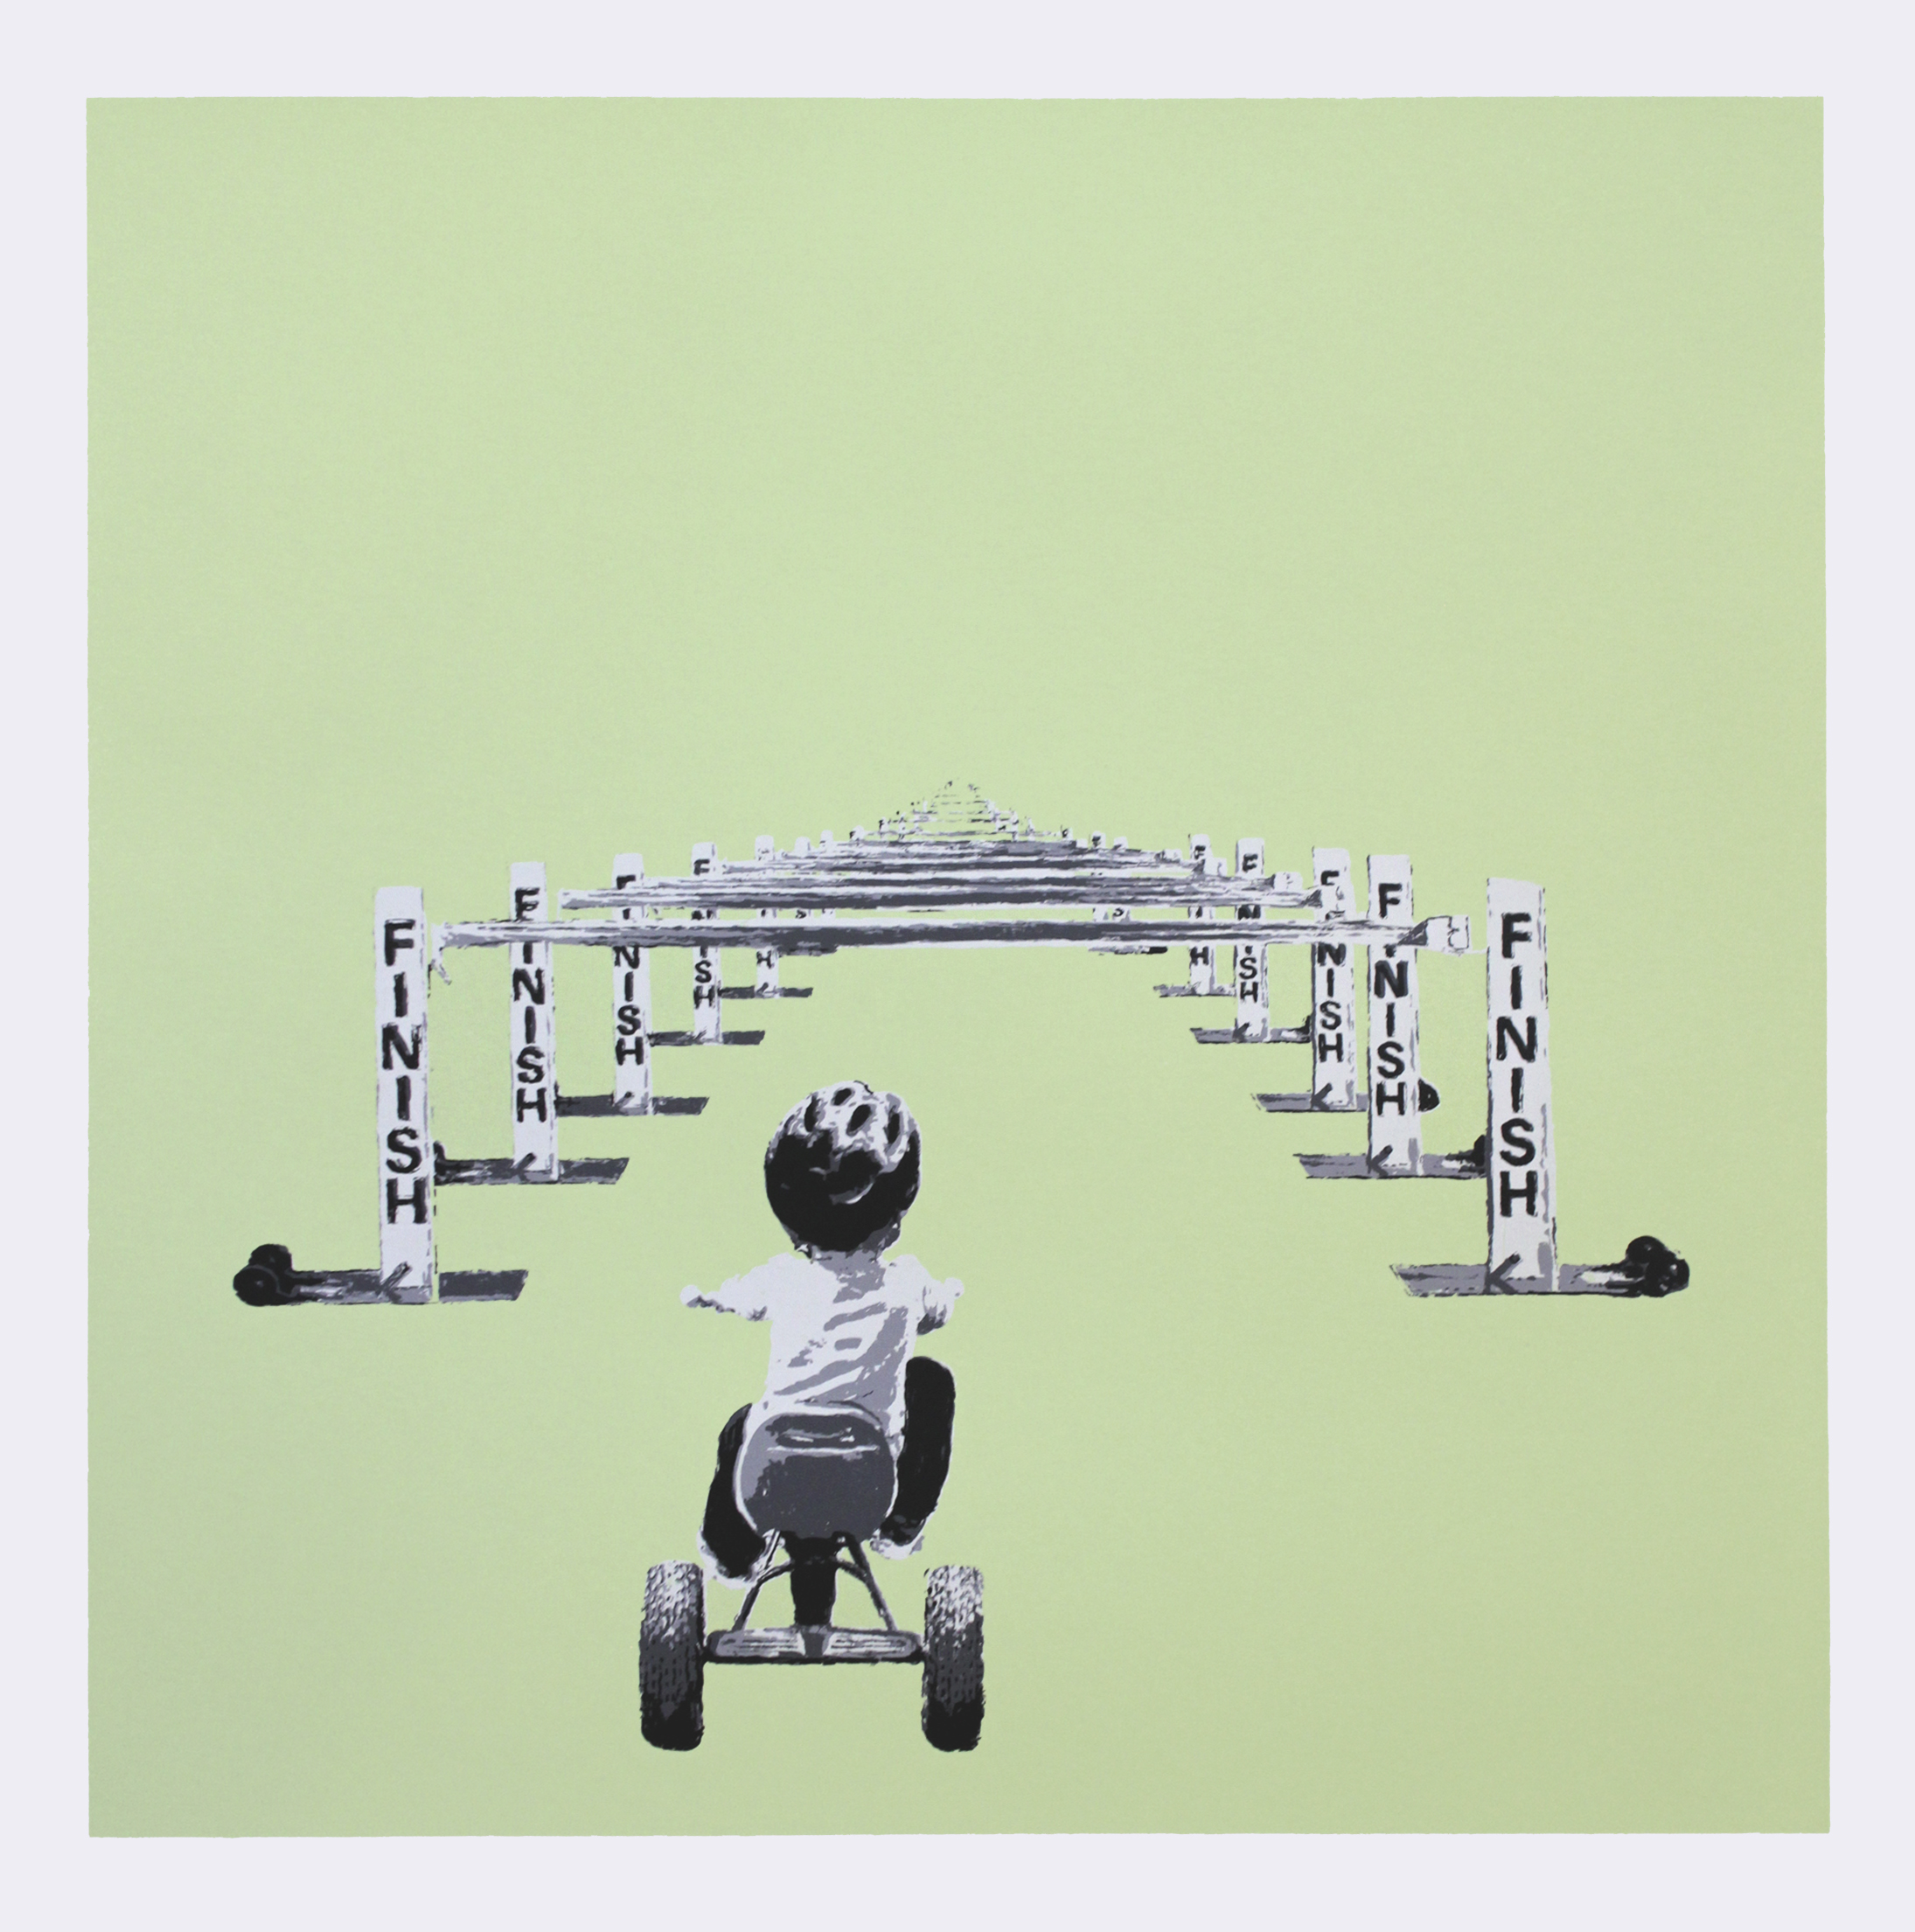 """Finish Line"" by Slate Kolain.  22"" x 22"" 5-color Screenprint.  Ed of 8 S/N.  $200 (Green)"